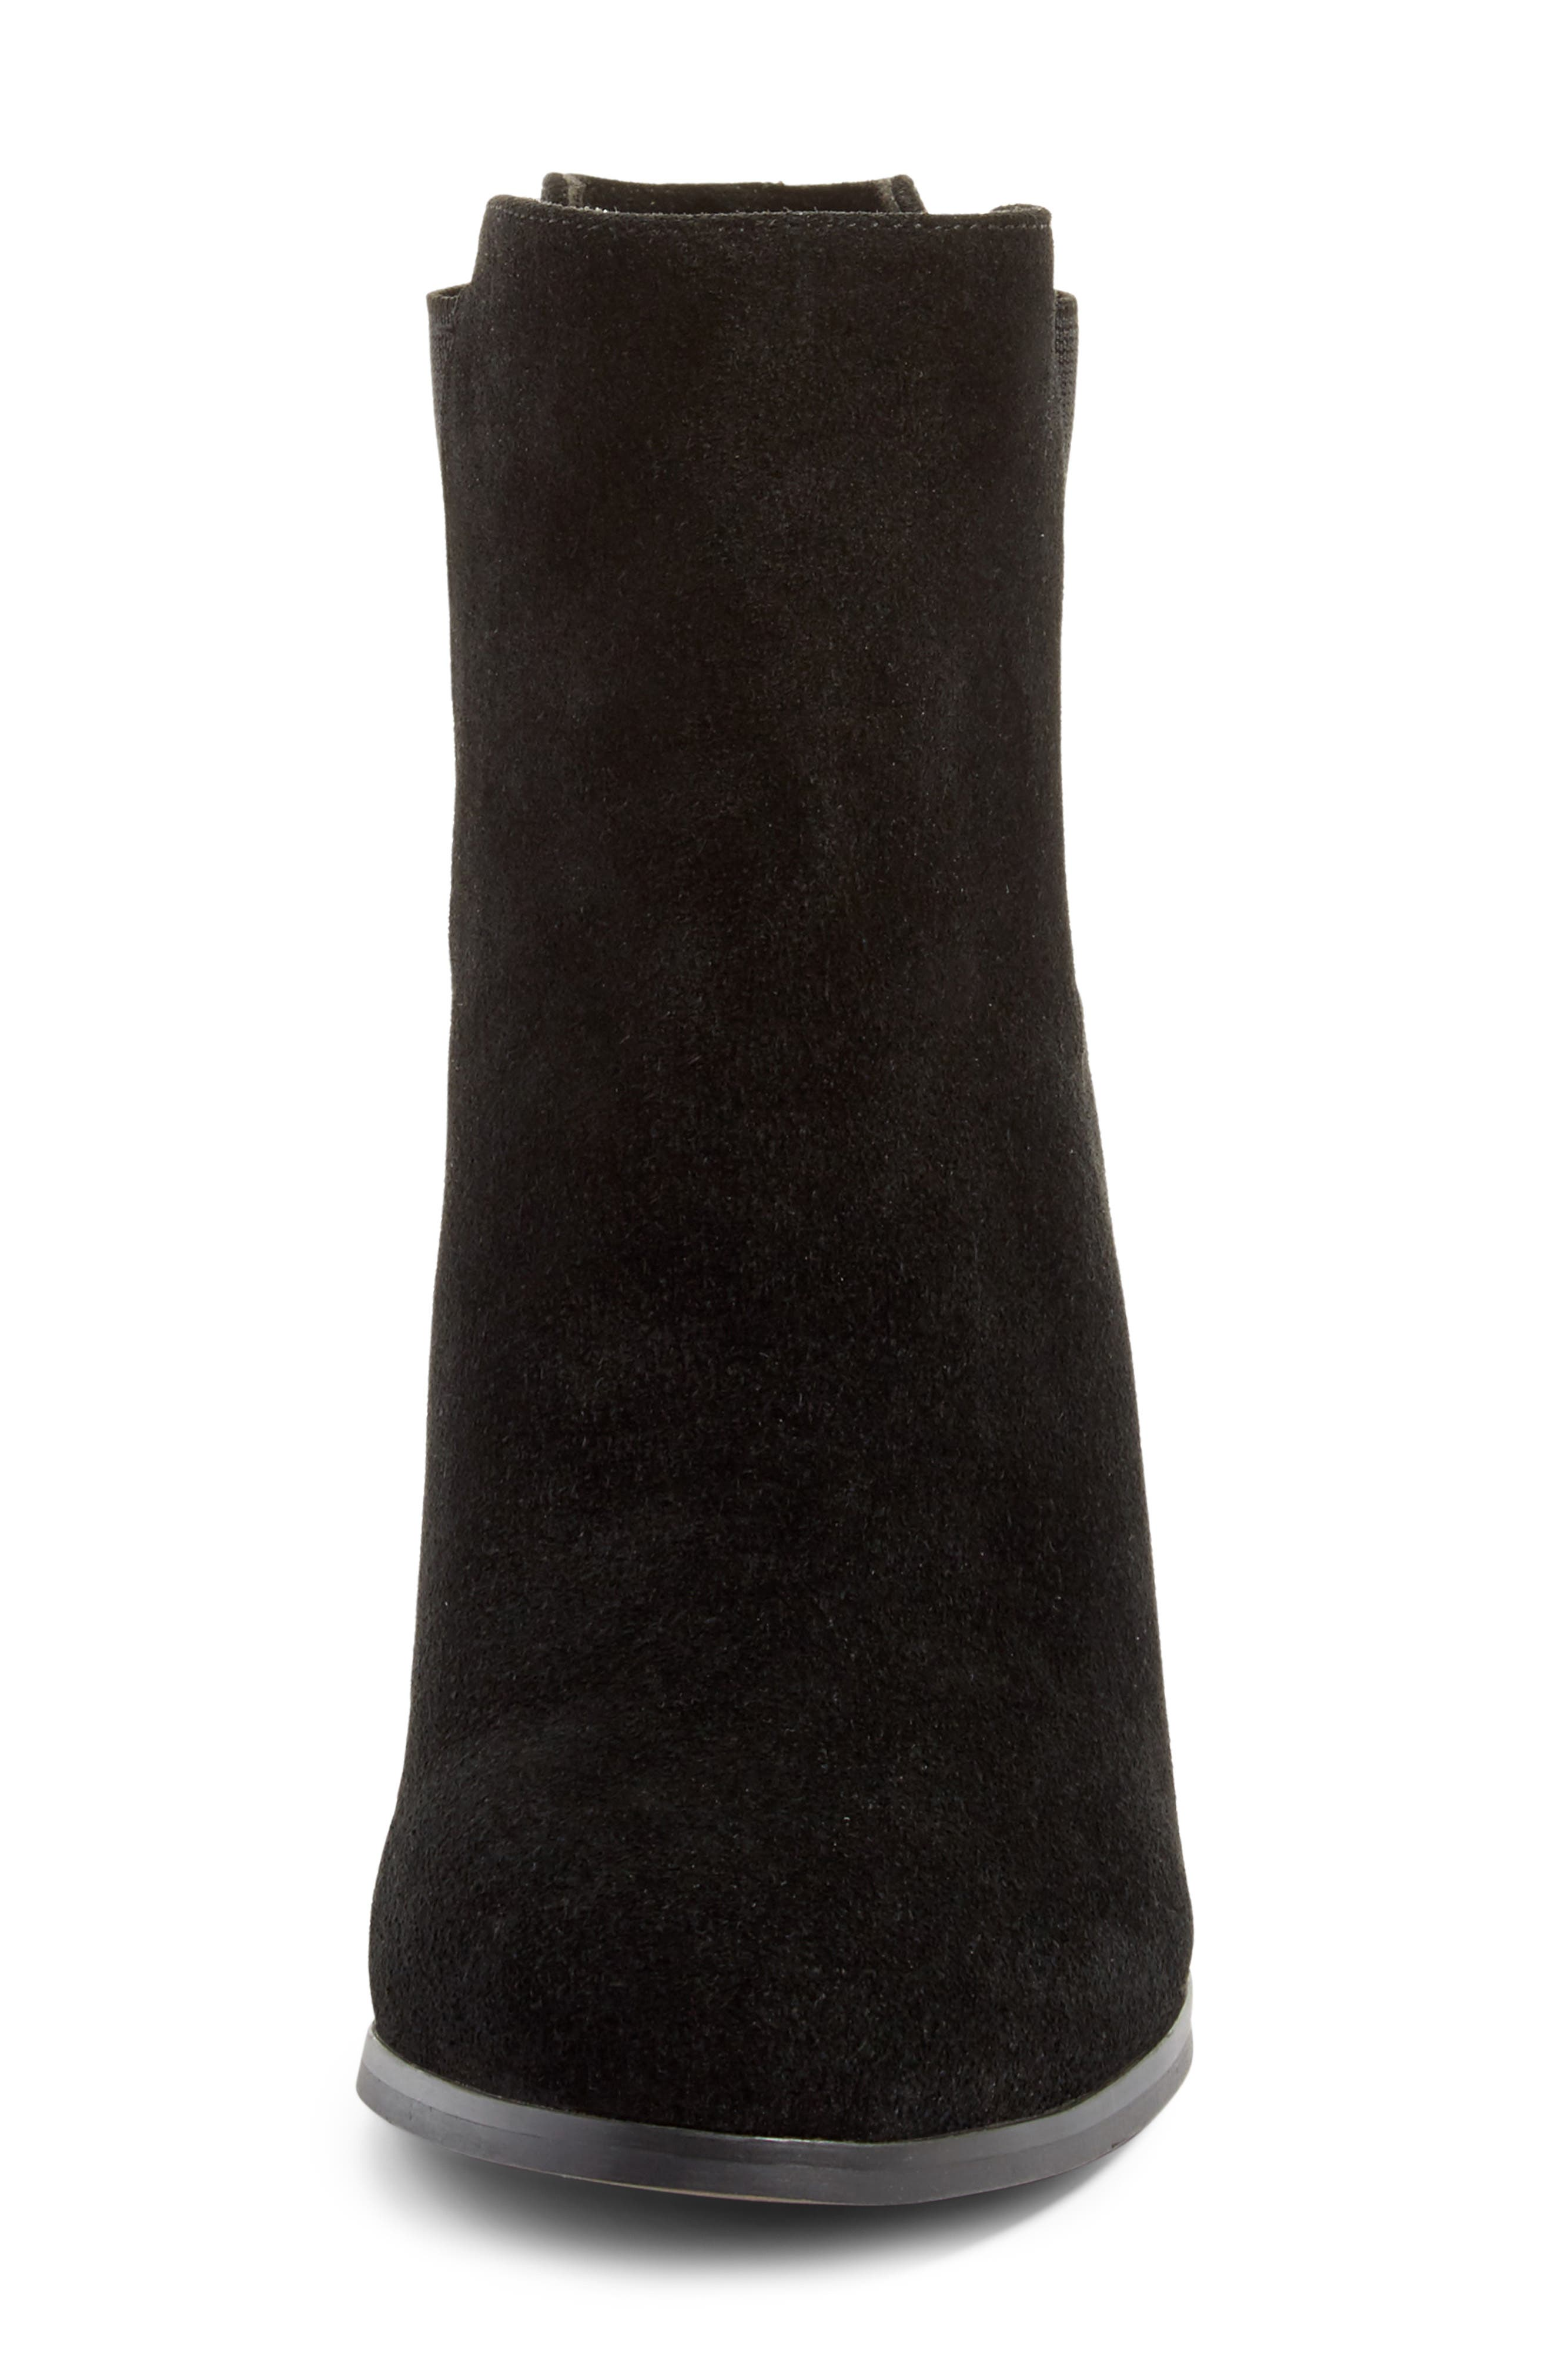 Alternate Image 3  - Sole Society 'Lylee' Suede Bootie (Women)